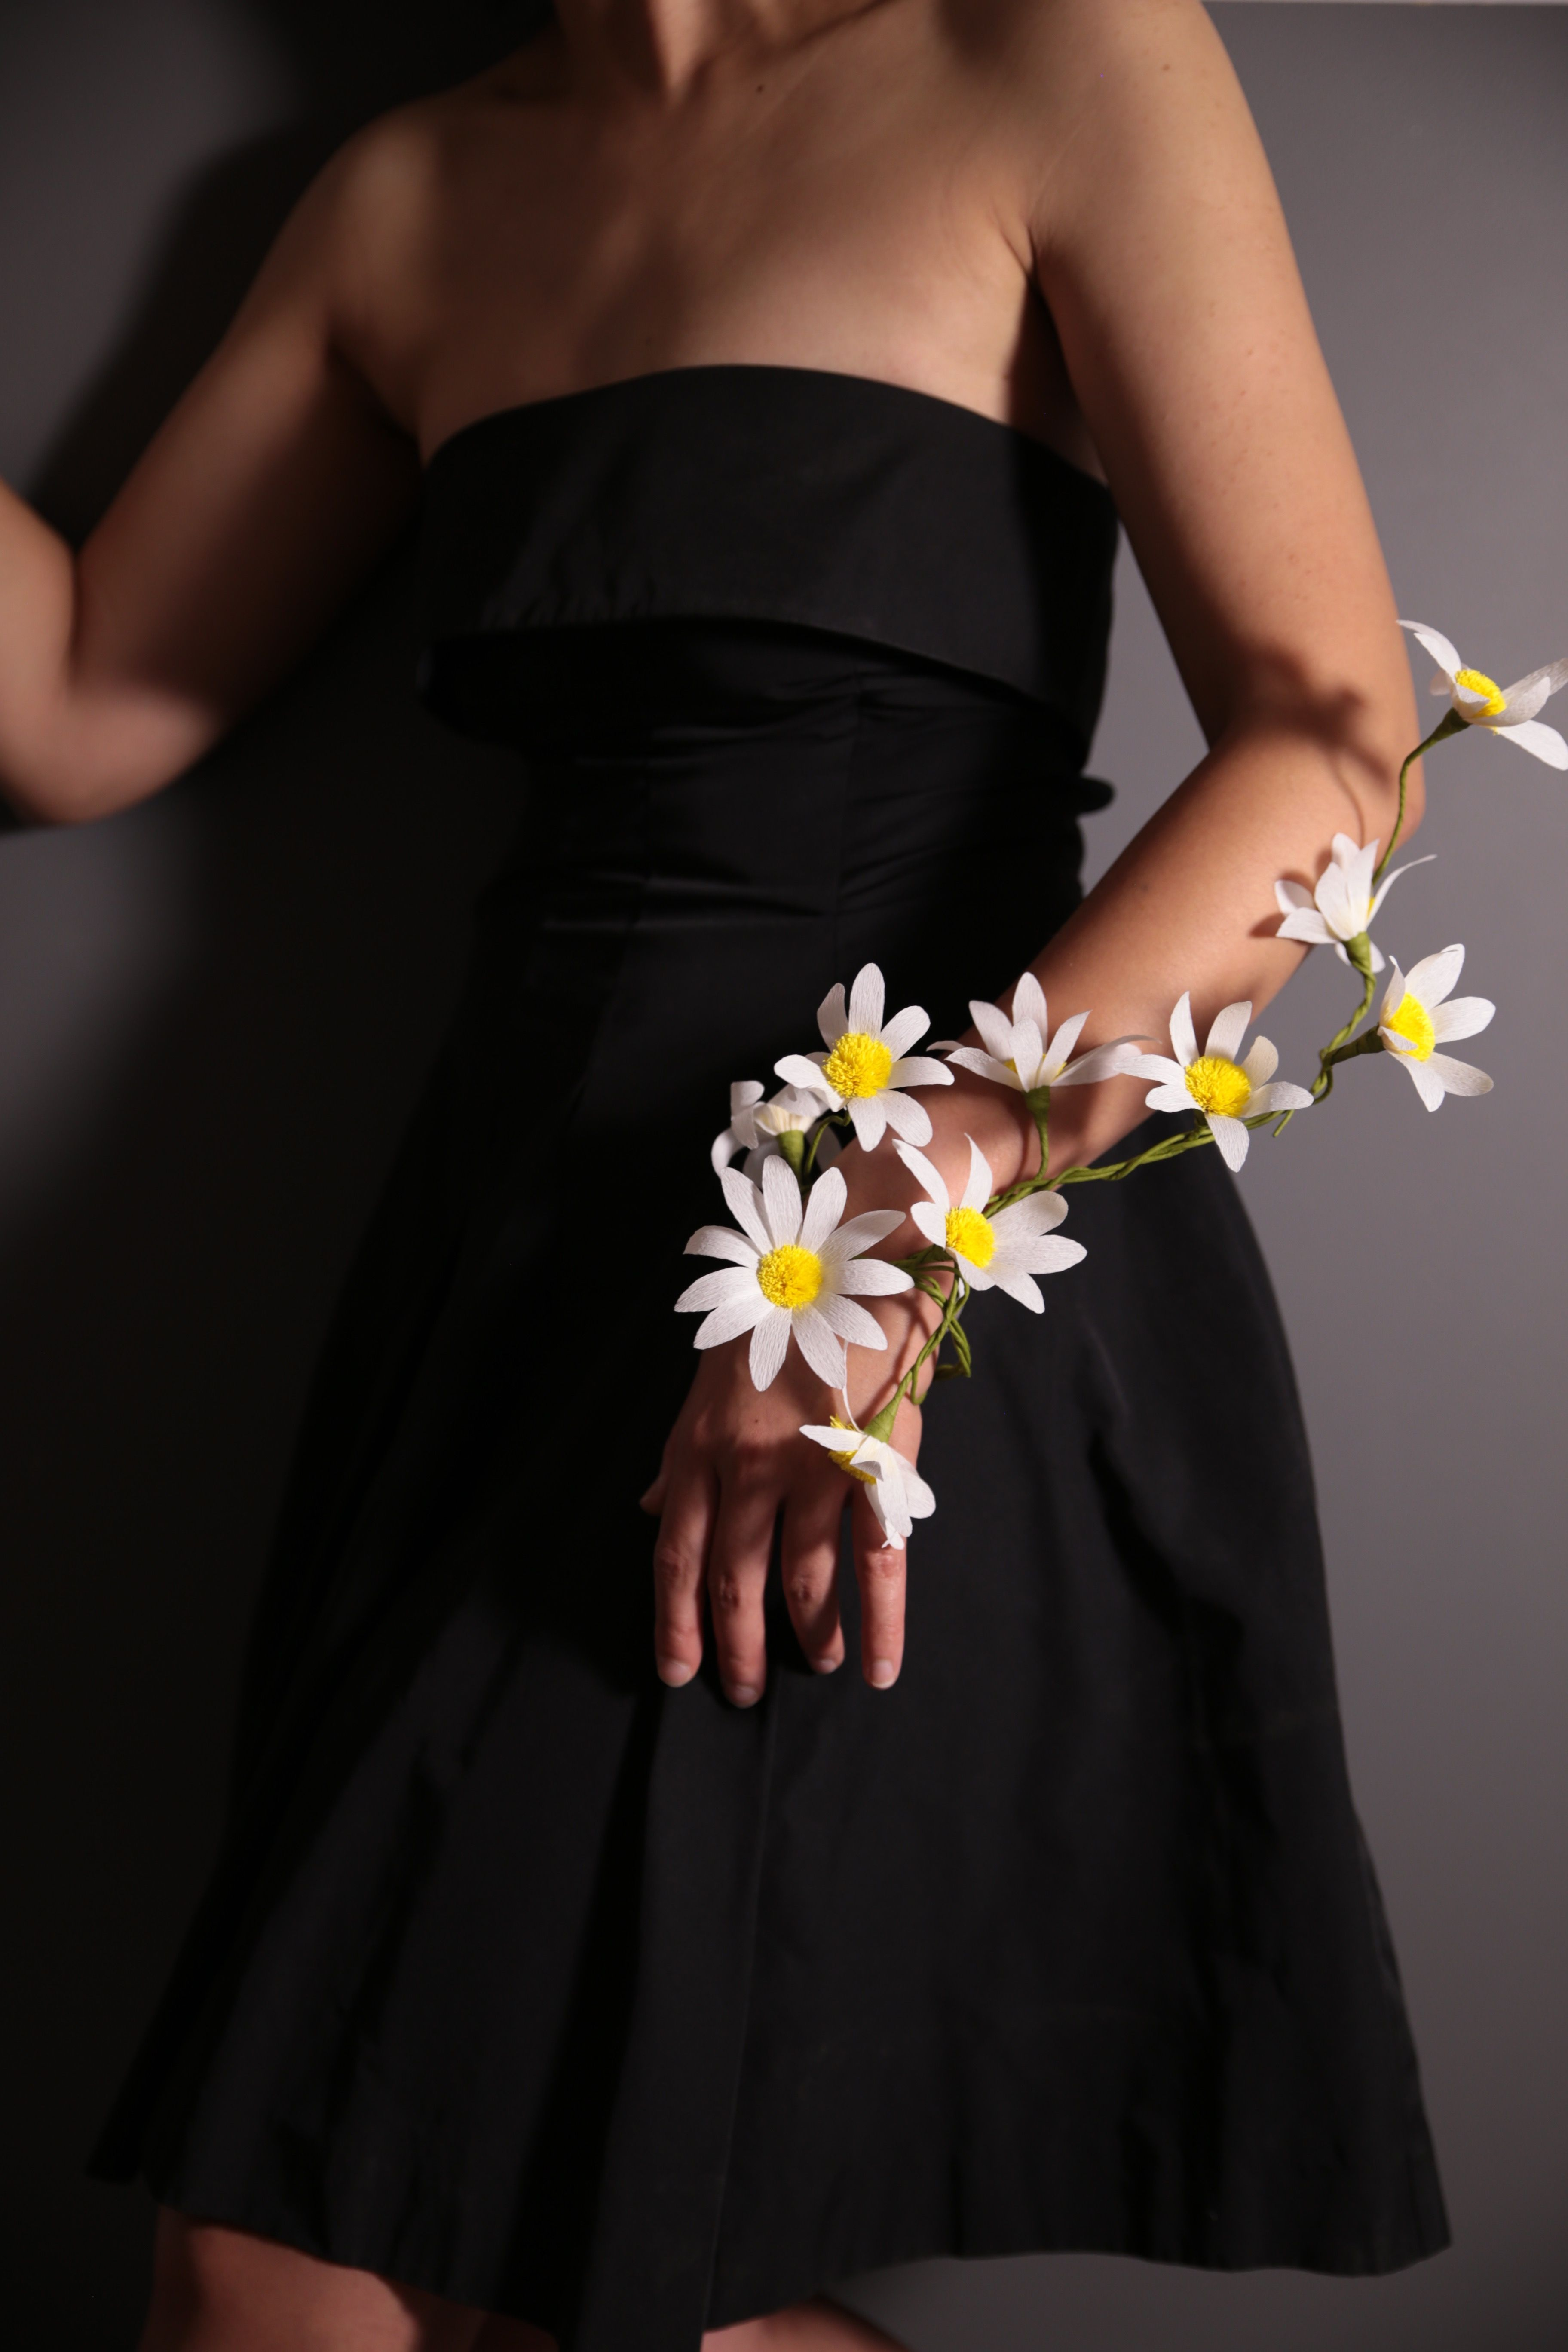 Crepe Paper Flower Corsage Styling And Photography By Jennifer Tran